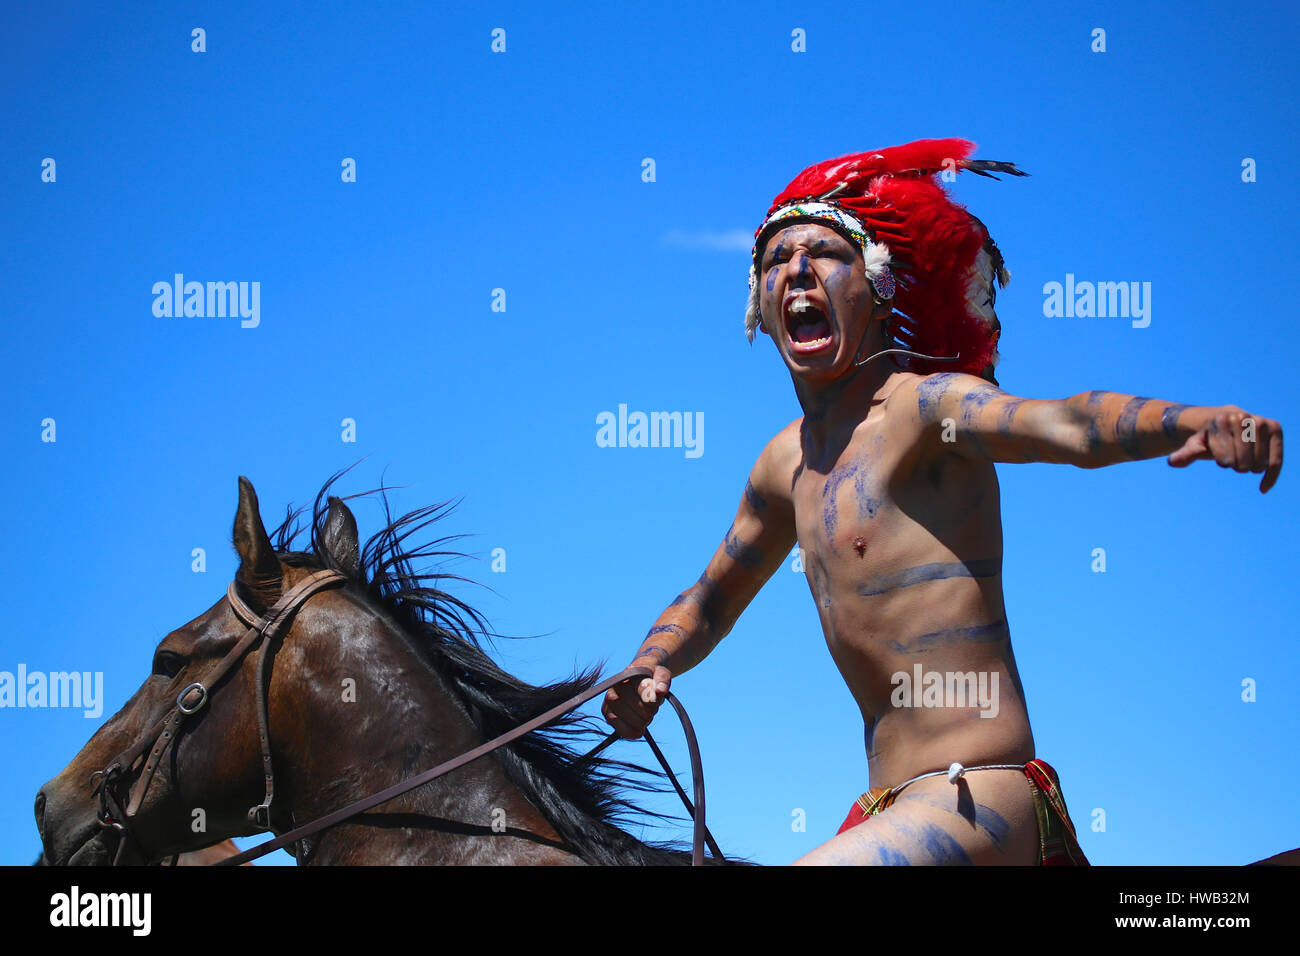 native american indian wearing blue war paint and wearing red